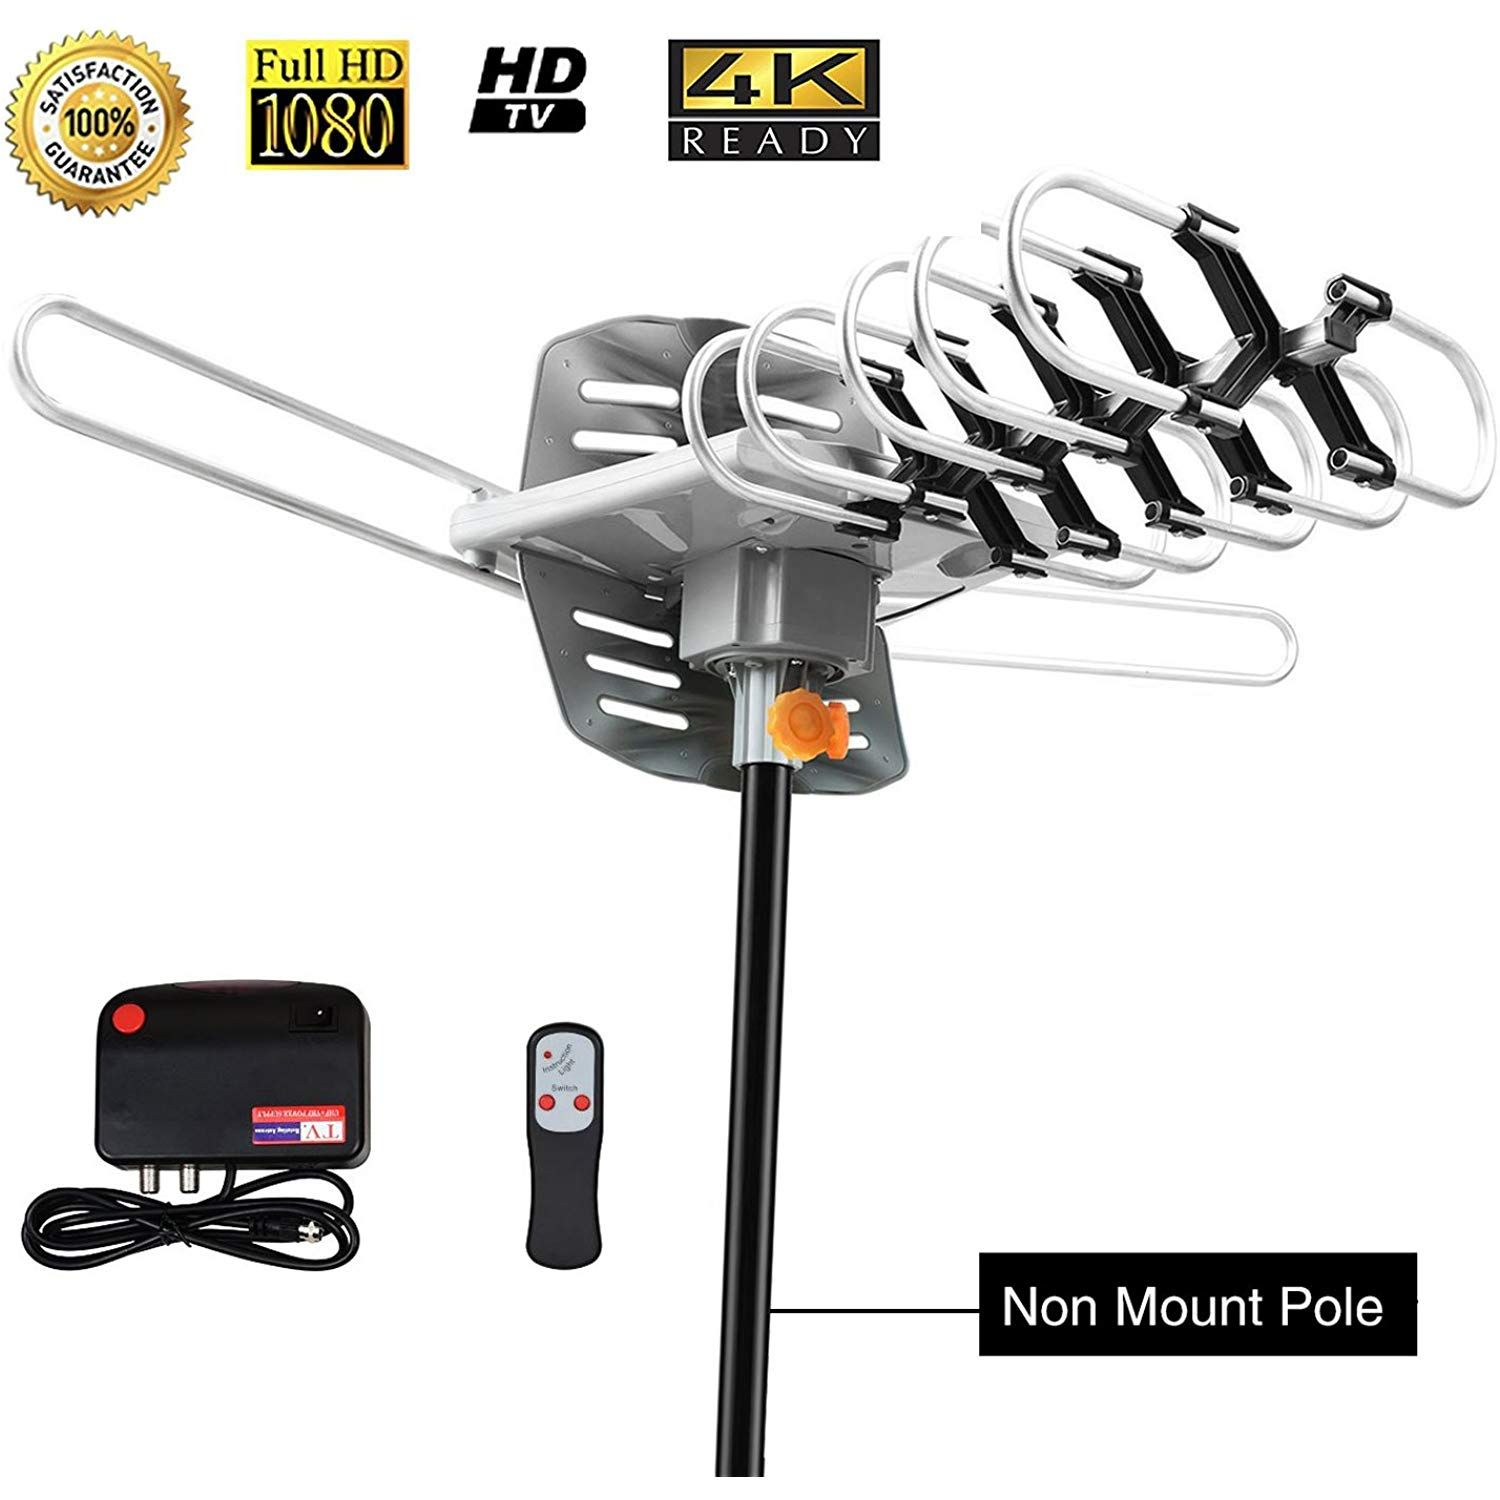 Tv Antenna Sobetter Amplified Outdoor 150 Mile Range Digital Tv Antenna With Uhf Vhf Fm 360a Rotation High Perfor Tv Antenna Tv Antennas Outdoor Tv Antenna